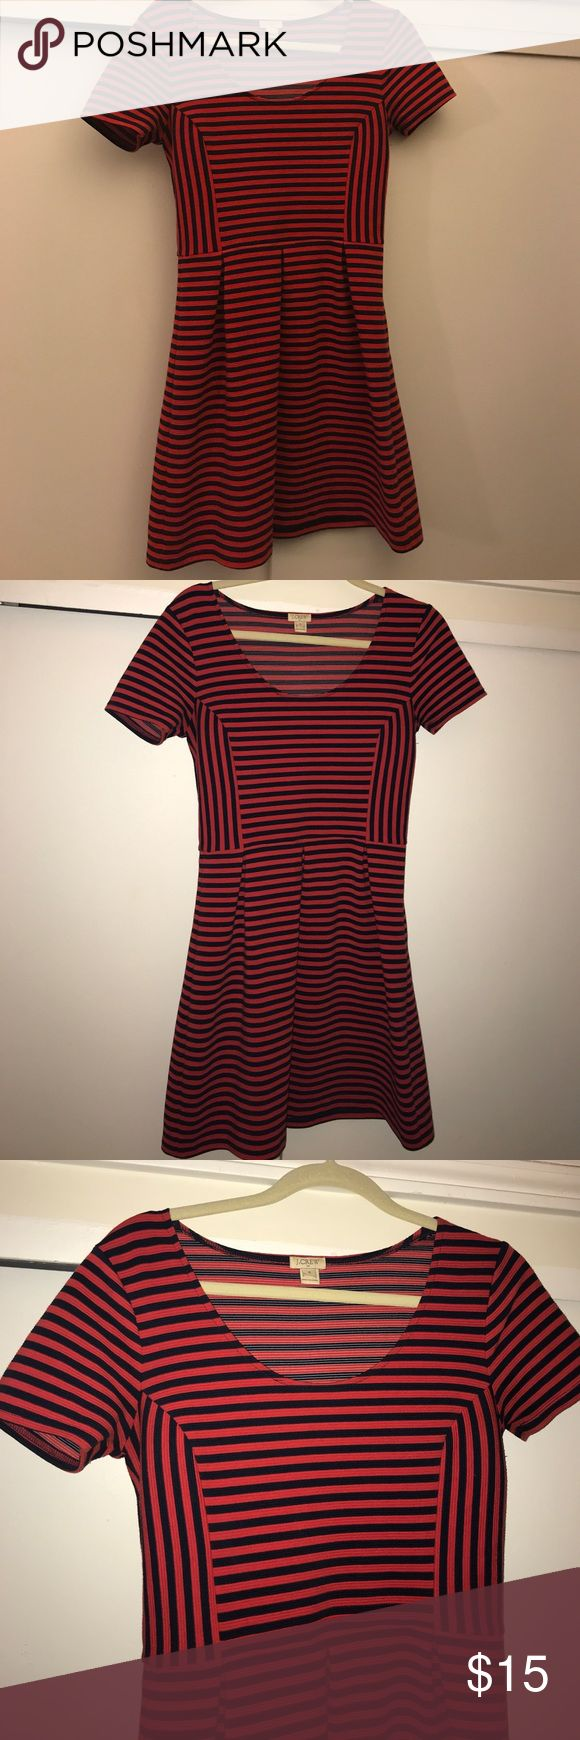 Jcrew red and navy striped dress Hits above the knee, short sleeved J. Crew Dresses Mini